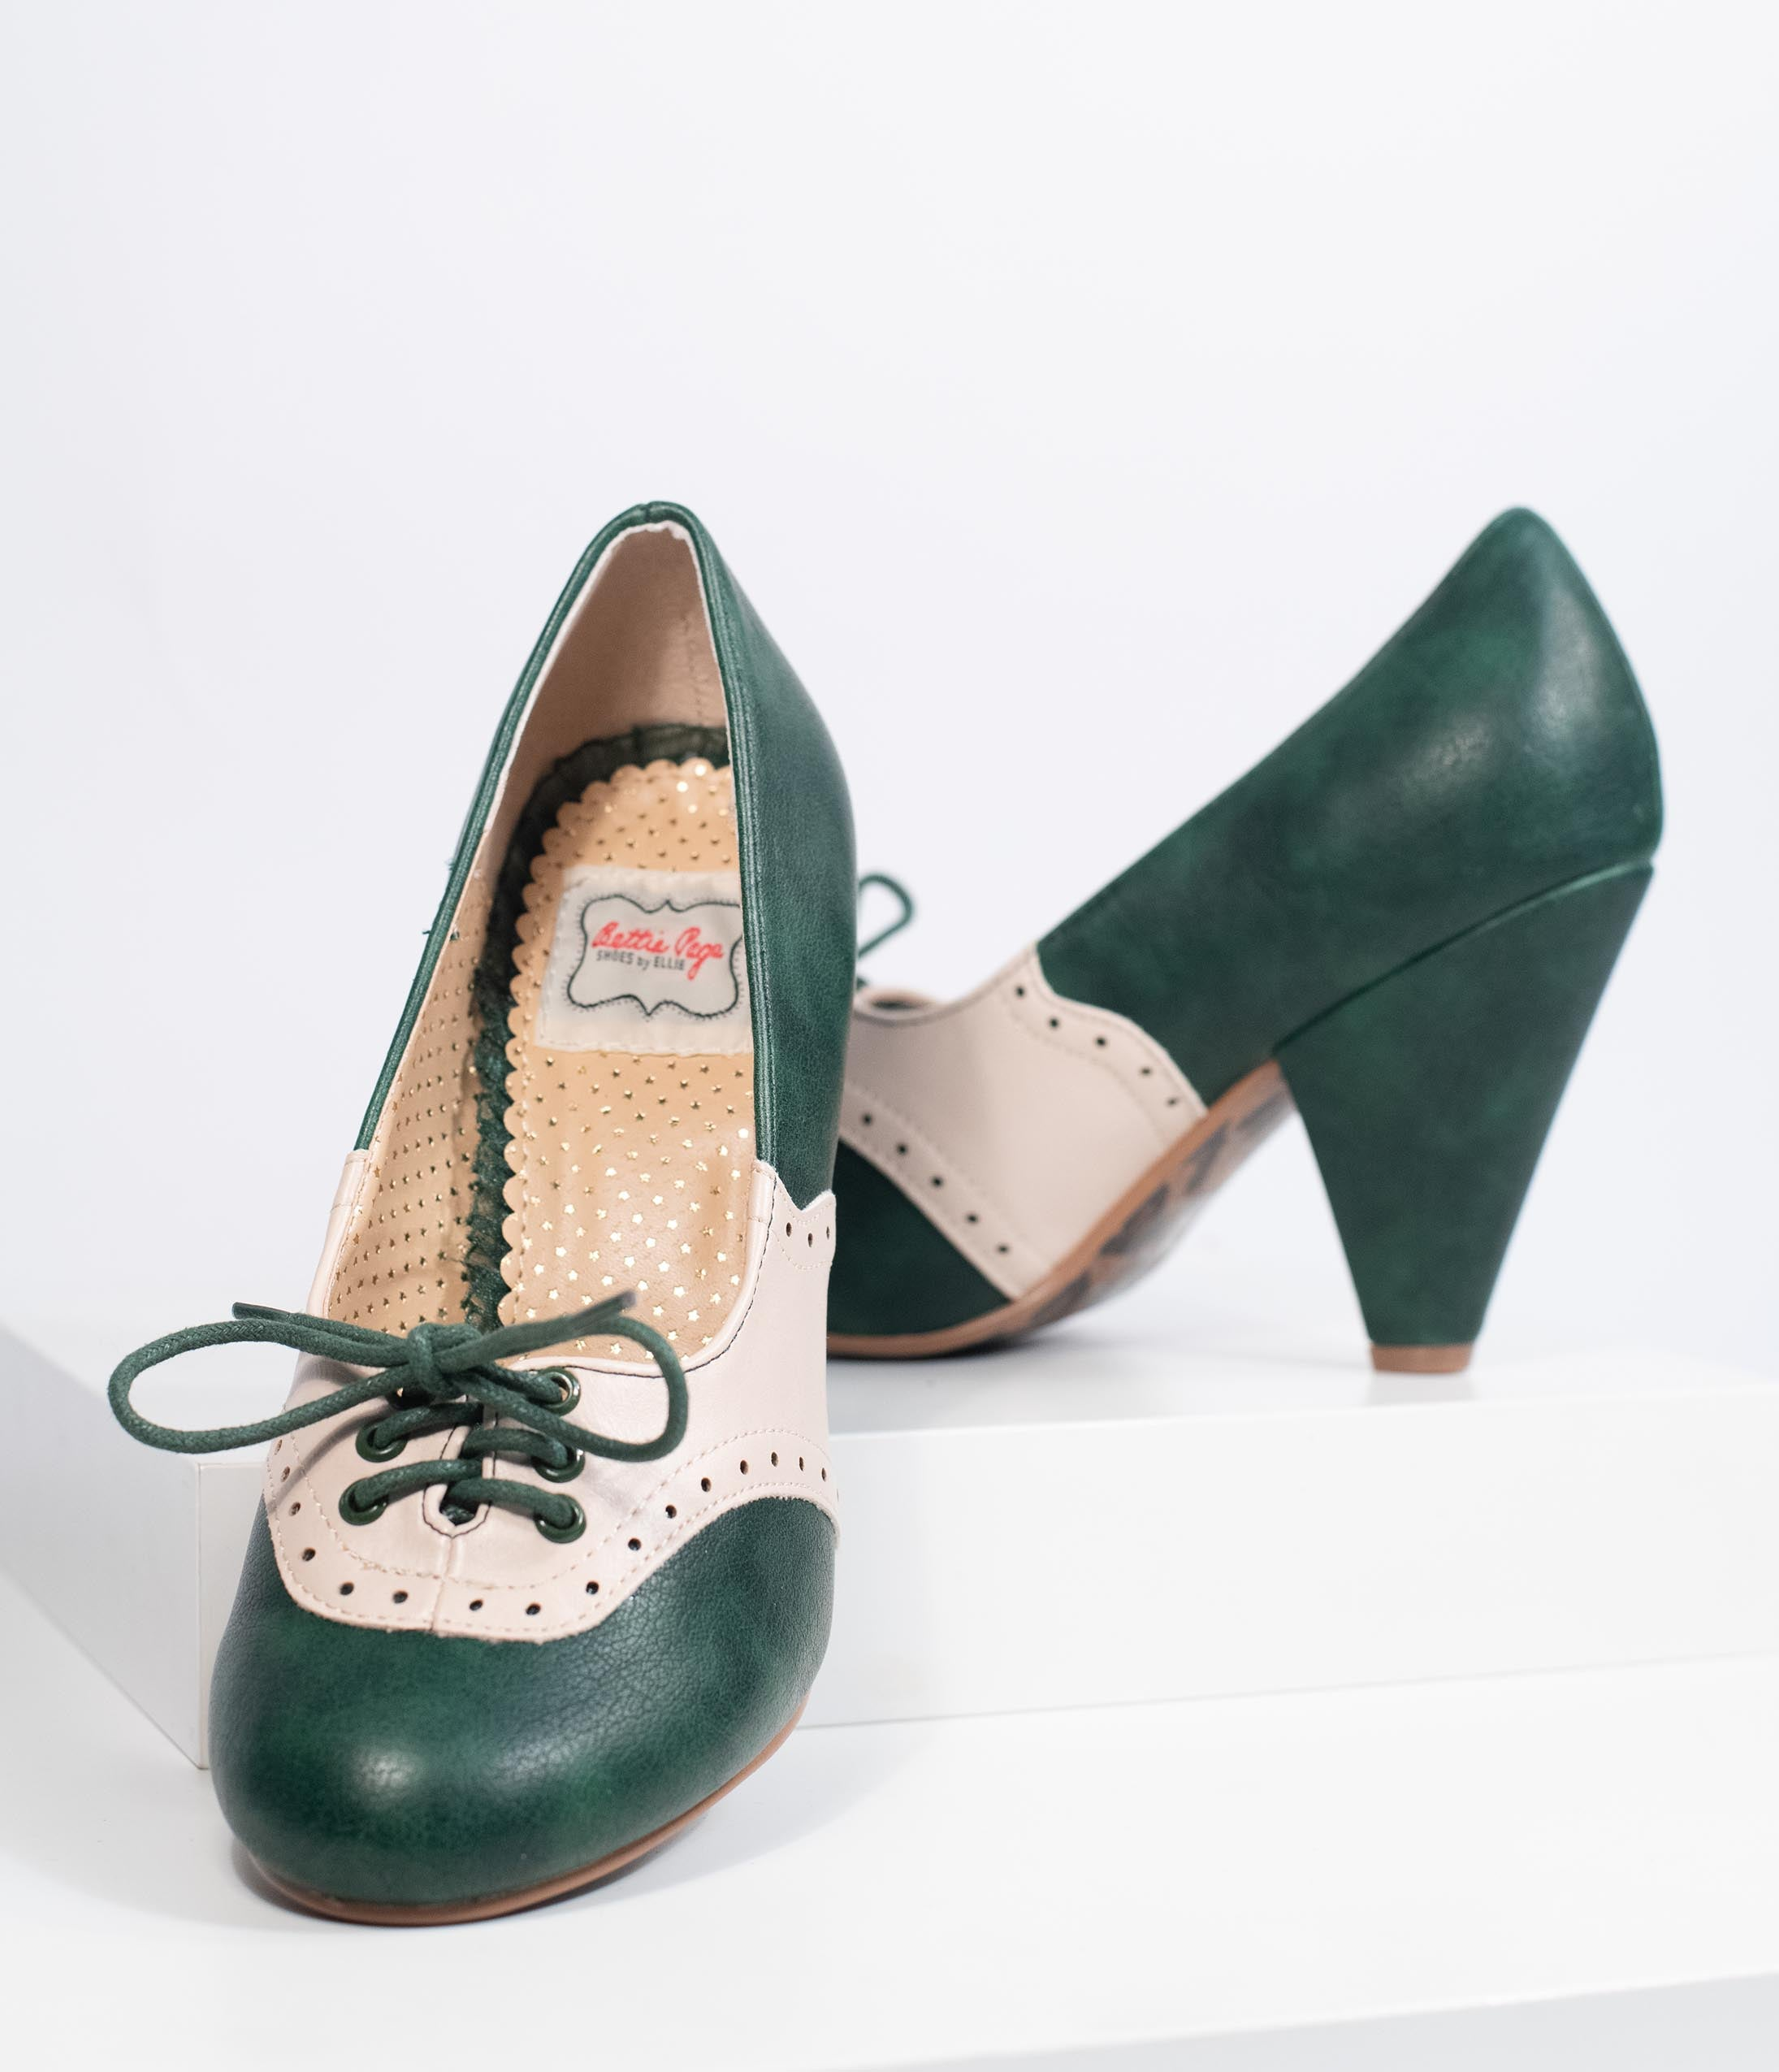 Vintage Style Shoes, Vintage Inspired Shoes Bettie Page Green  Ivory Leatherette Carole Oxford Saddle Heels $74.00 AT vintagedancer.com